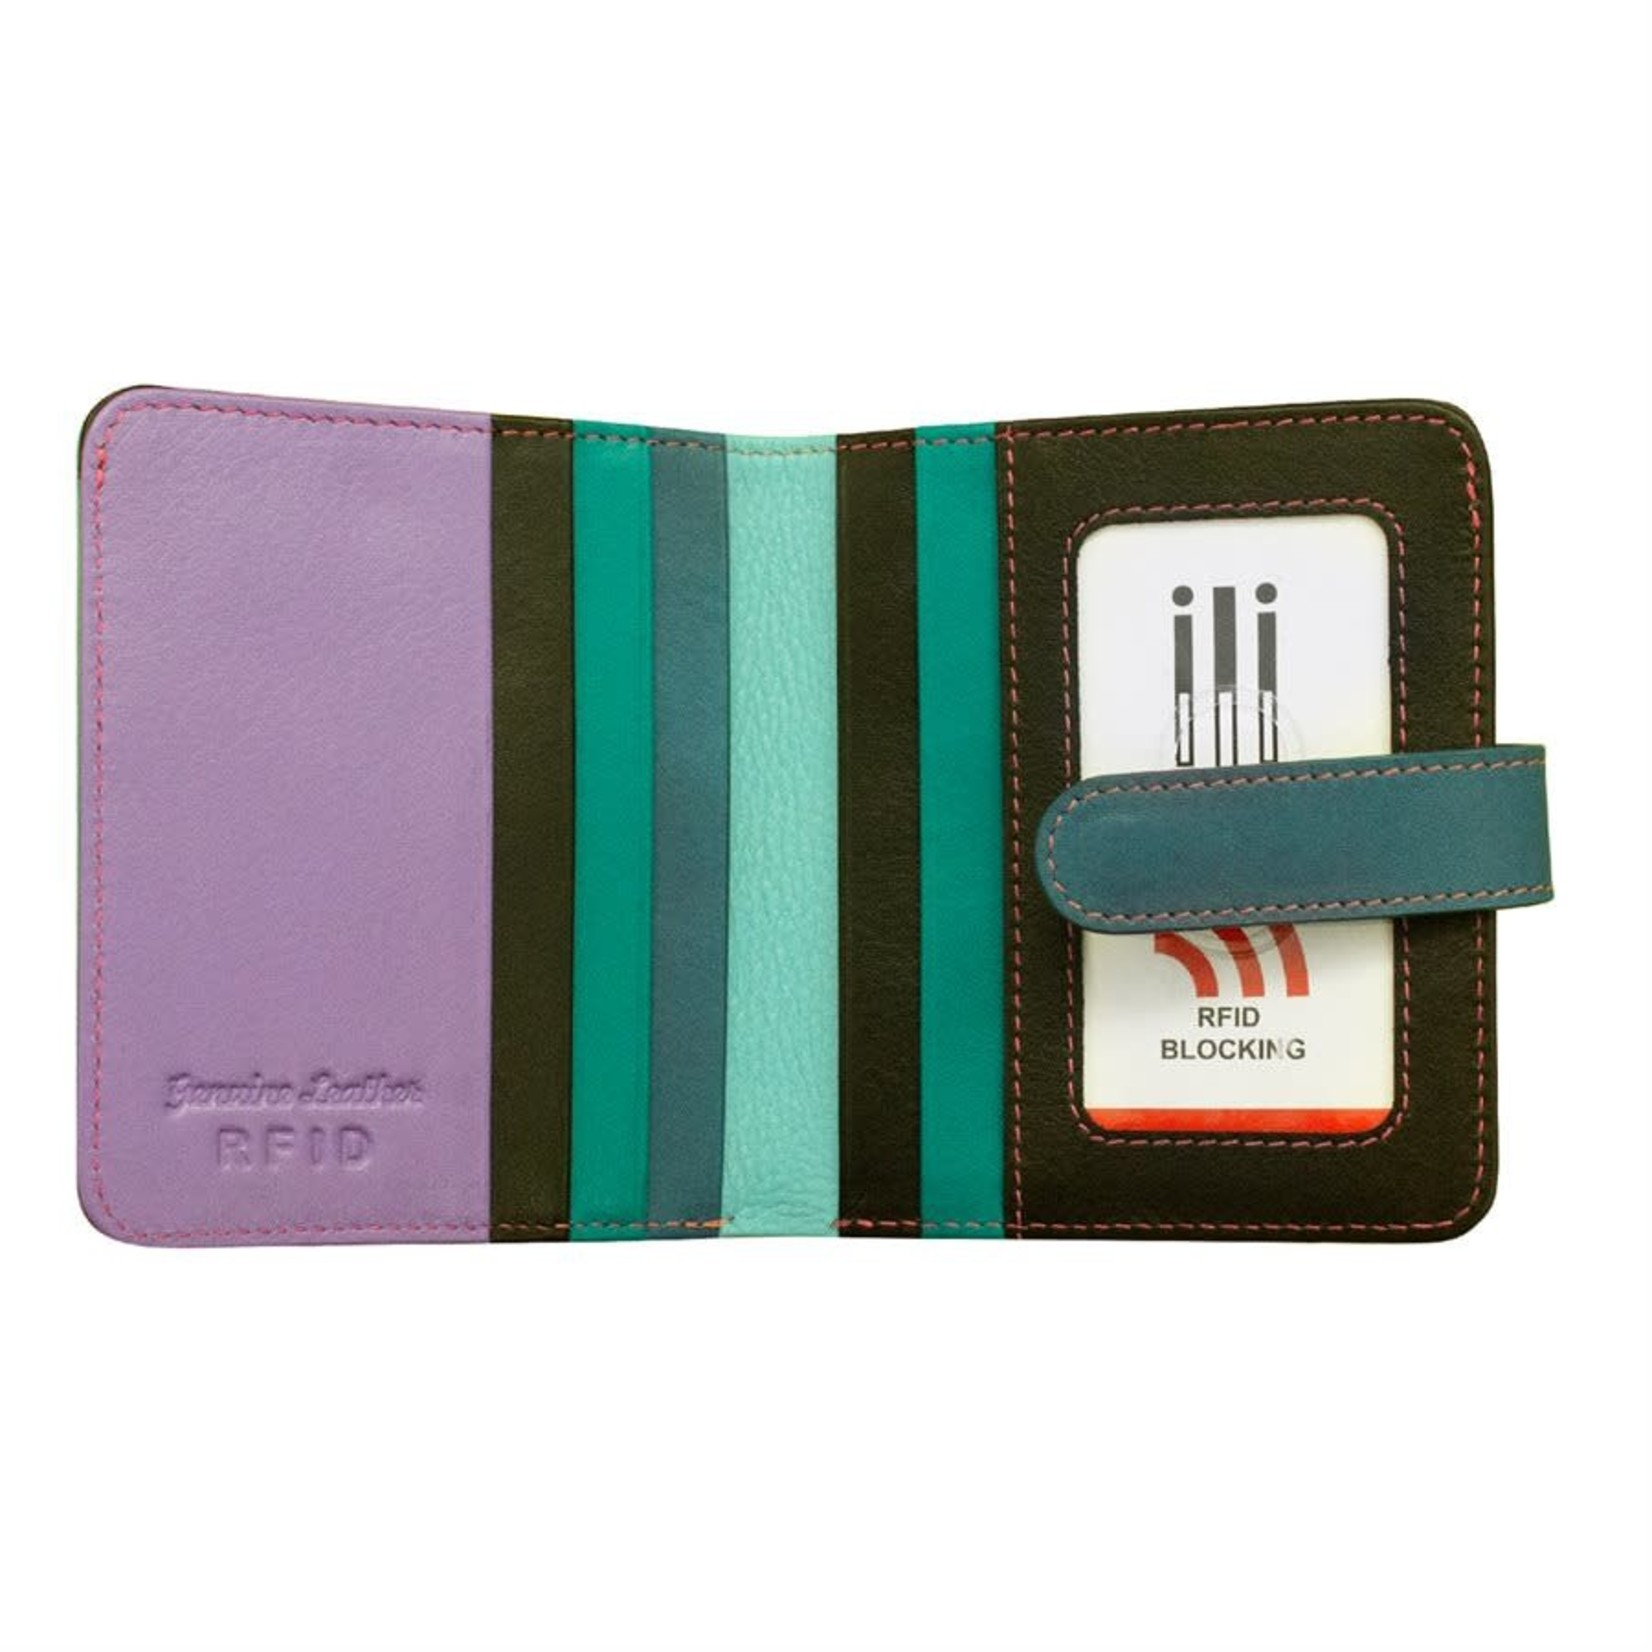 Leather Handbags and Accessories 7301 Midnight - RFID Small Wallet